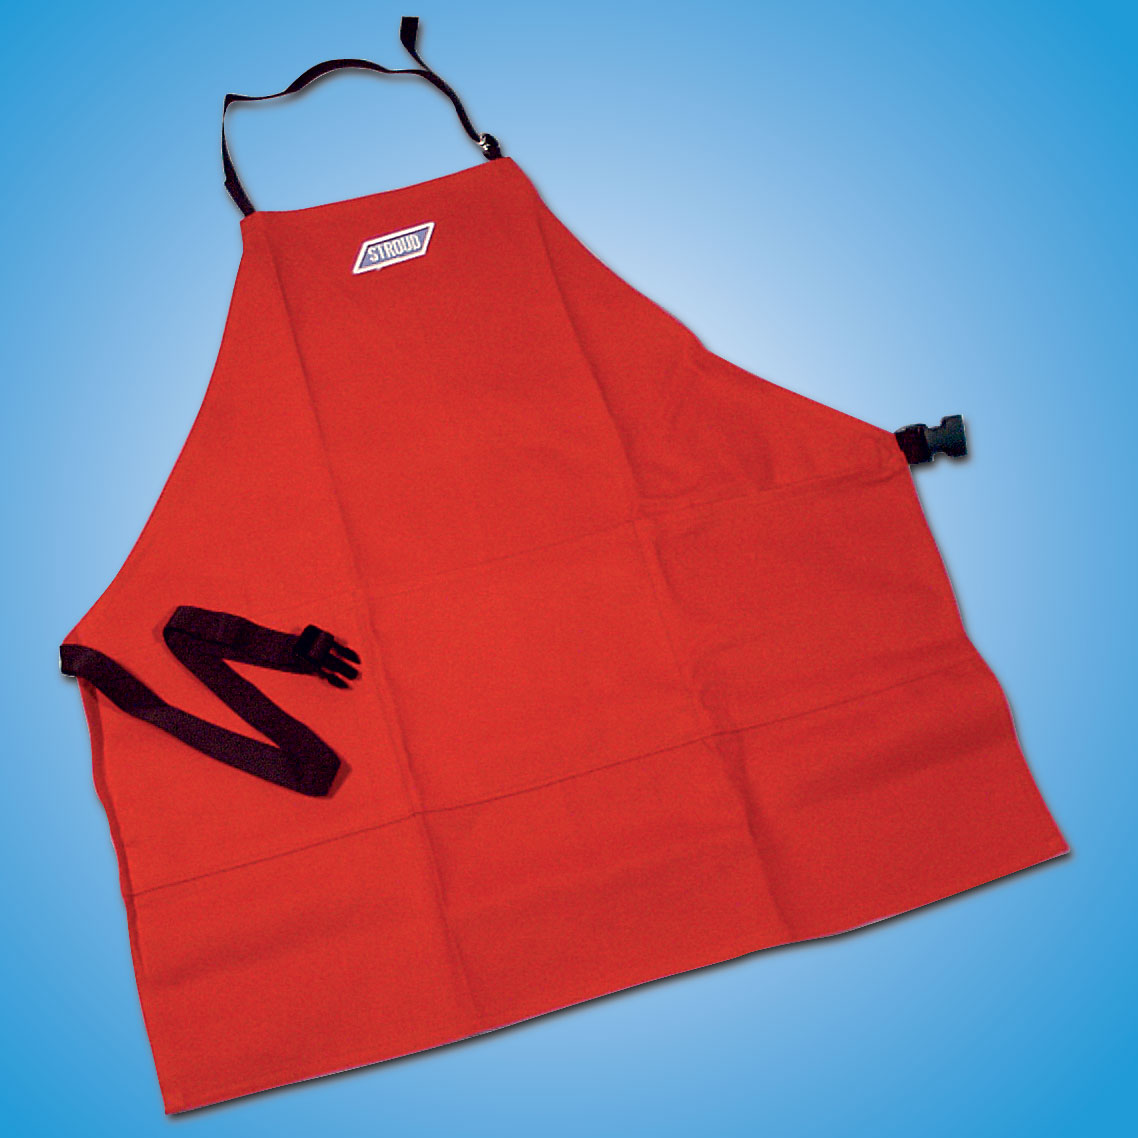 Machinist Apron   Stroud pit aprons are made with fire retardant cotton to protect from flash fires. They offer an adjustable waist and neck, with quick release buckle. Aprons have three large pockets at waist level to hold tools, parts, etc., when working on your car. Available in black, red or blue. Custom monogramming available.  Part #8040 — $31